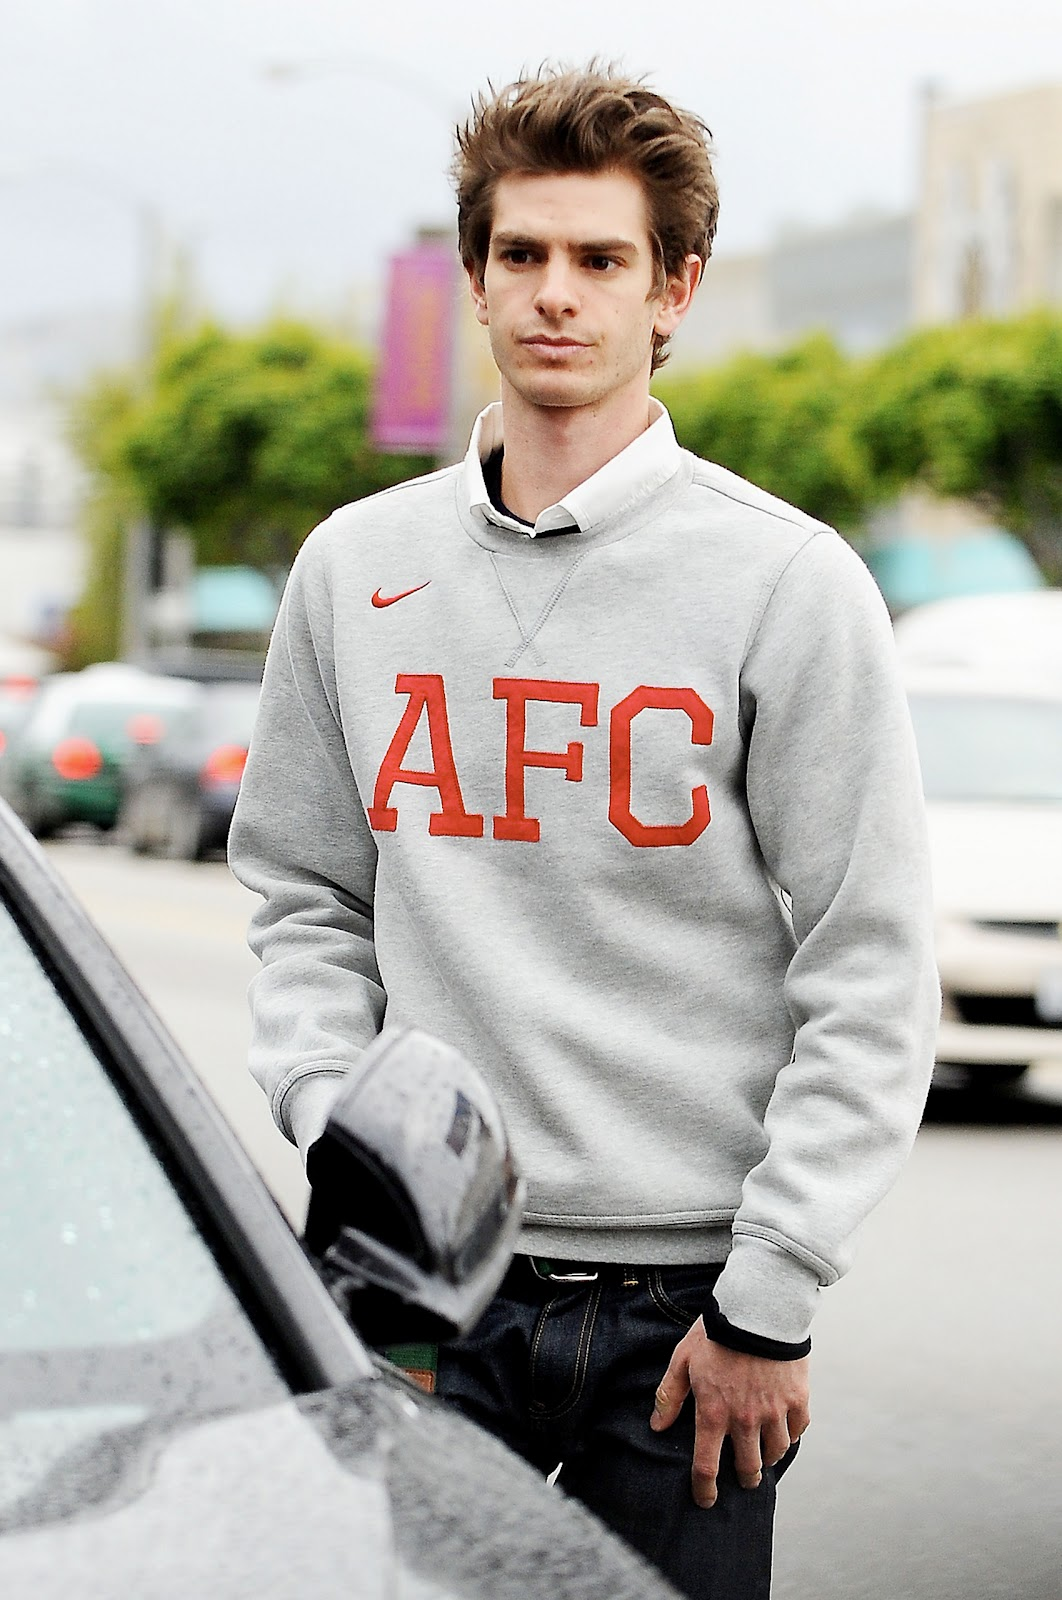 Andrew Garfield | Profile and New Photos-Images 2012 ... Andrew